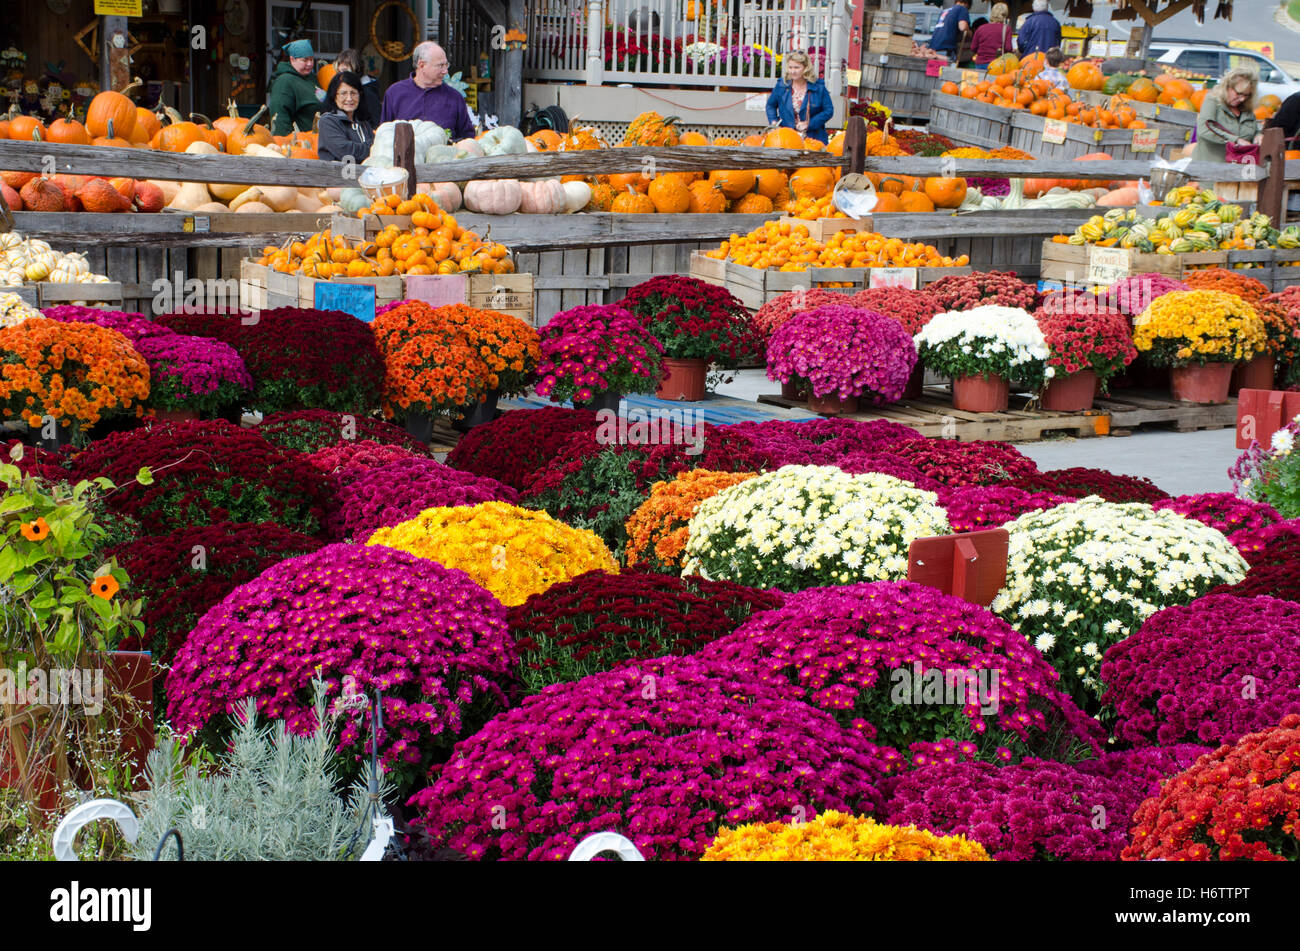 Brightly colored mums flowers, pumpkins, and other autumn produce at Baugher's Orchards and Farms in Westminster, - Stock Image